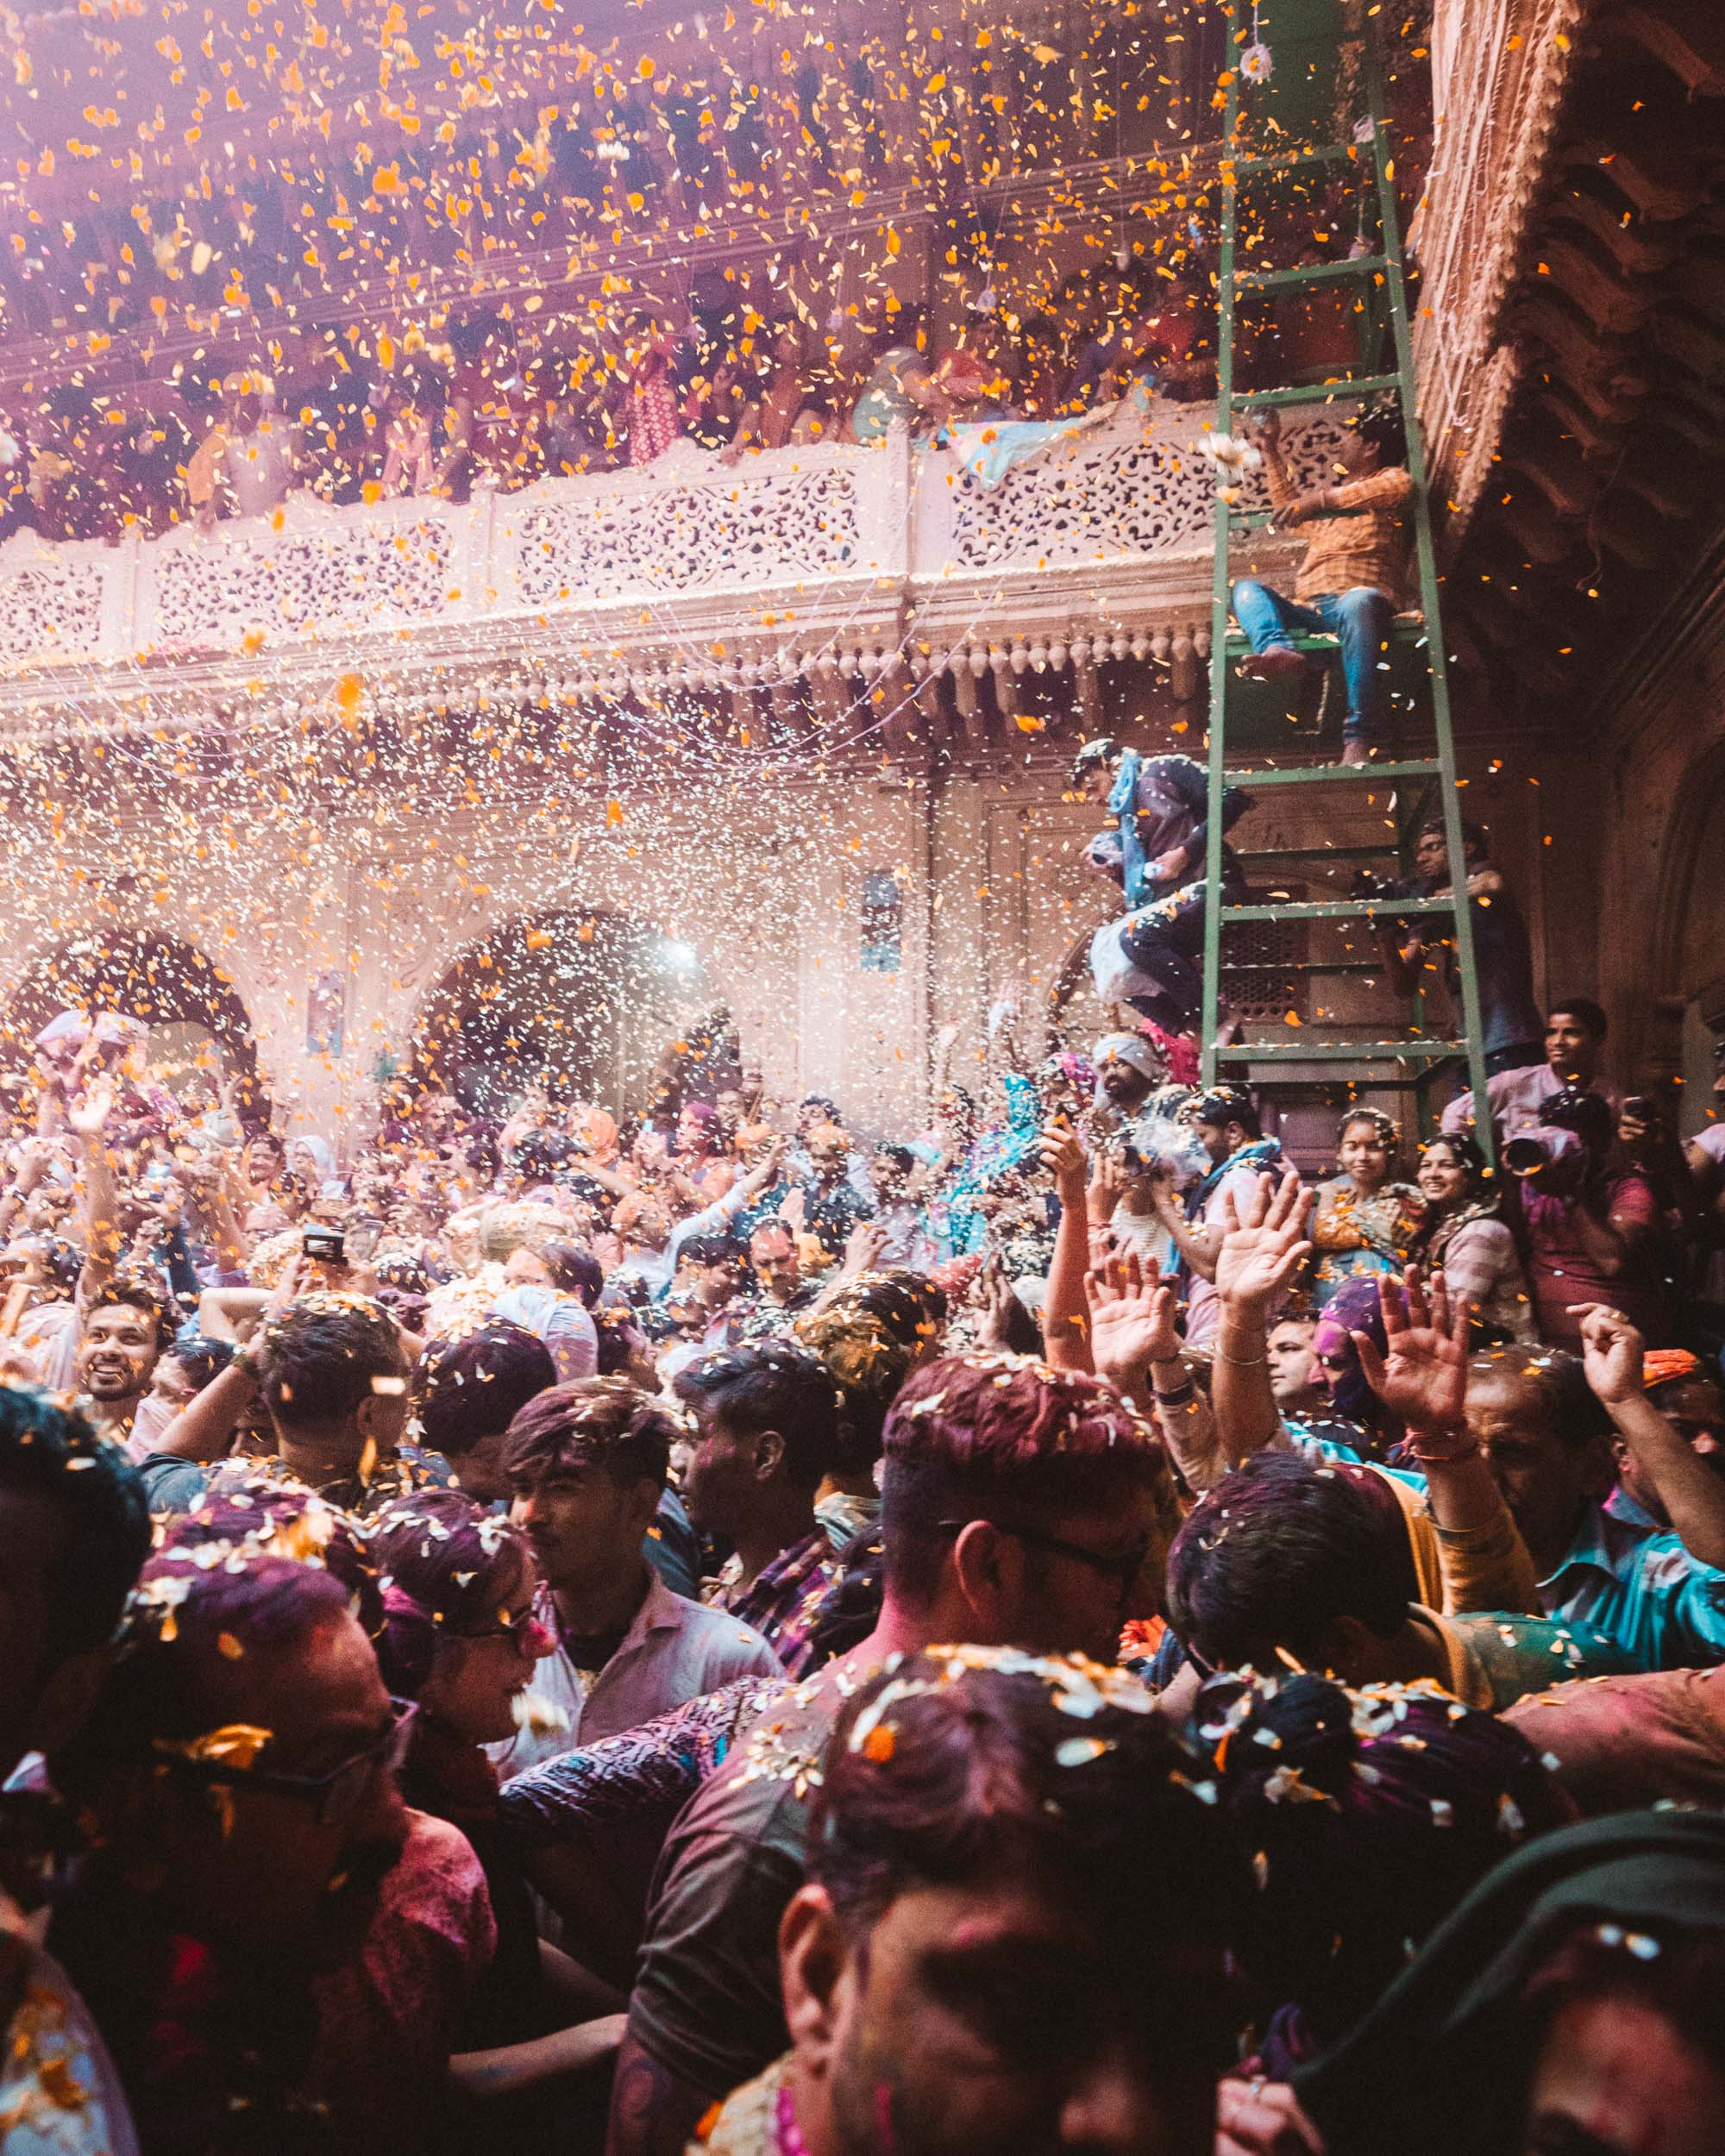 People celebrating with colorful powder and confetti during Pholoon Wali Holi Festival in Vrindavan, India via @finduslost